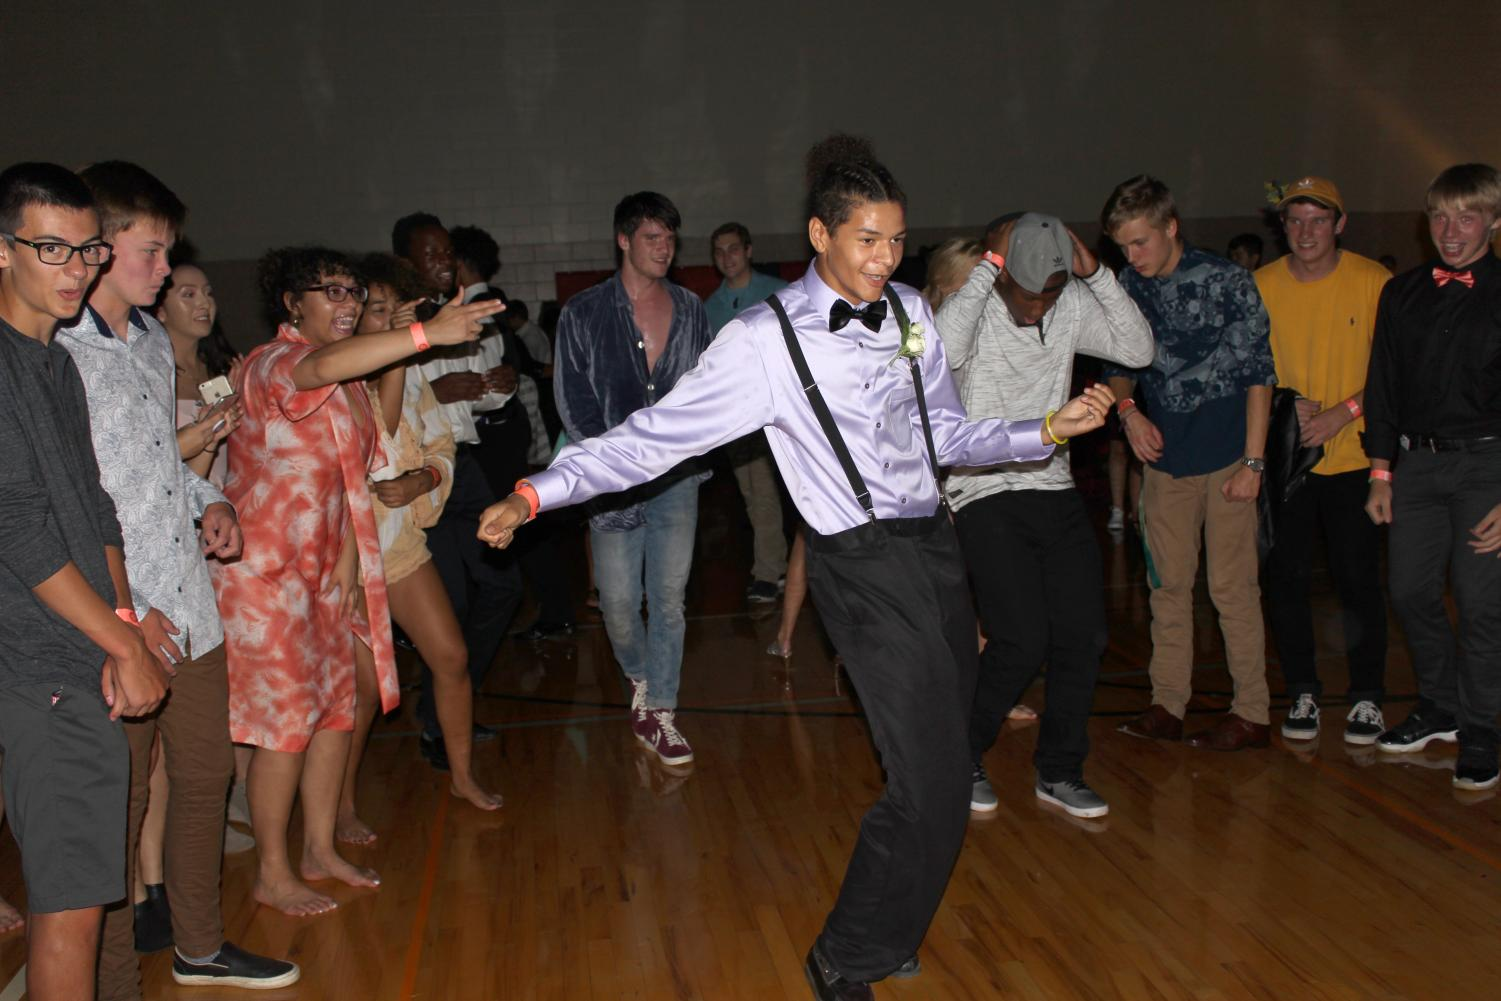 Levelle Foster (9) gets his grove on during the Friday Night Fever Homecoming Dance on Friday, Sept. 21, 2018 while other students cheer him on.  Photo by Clementine Ewomsan.